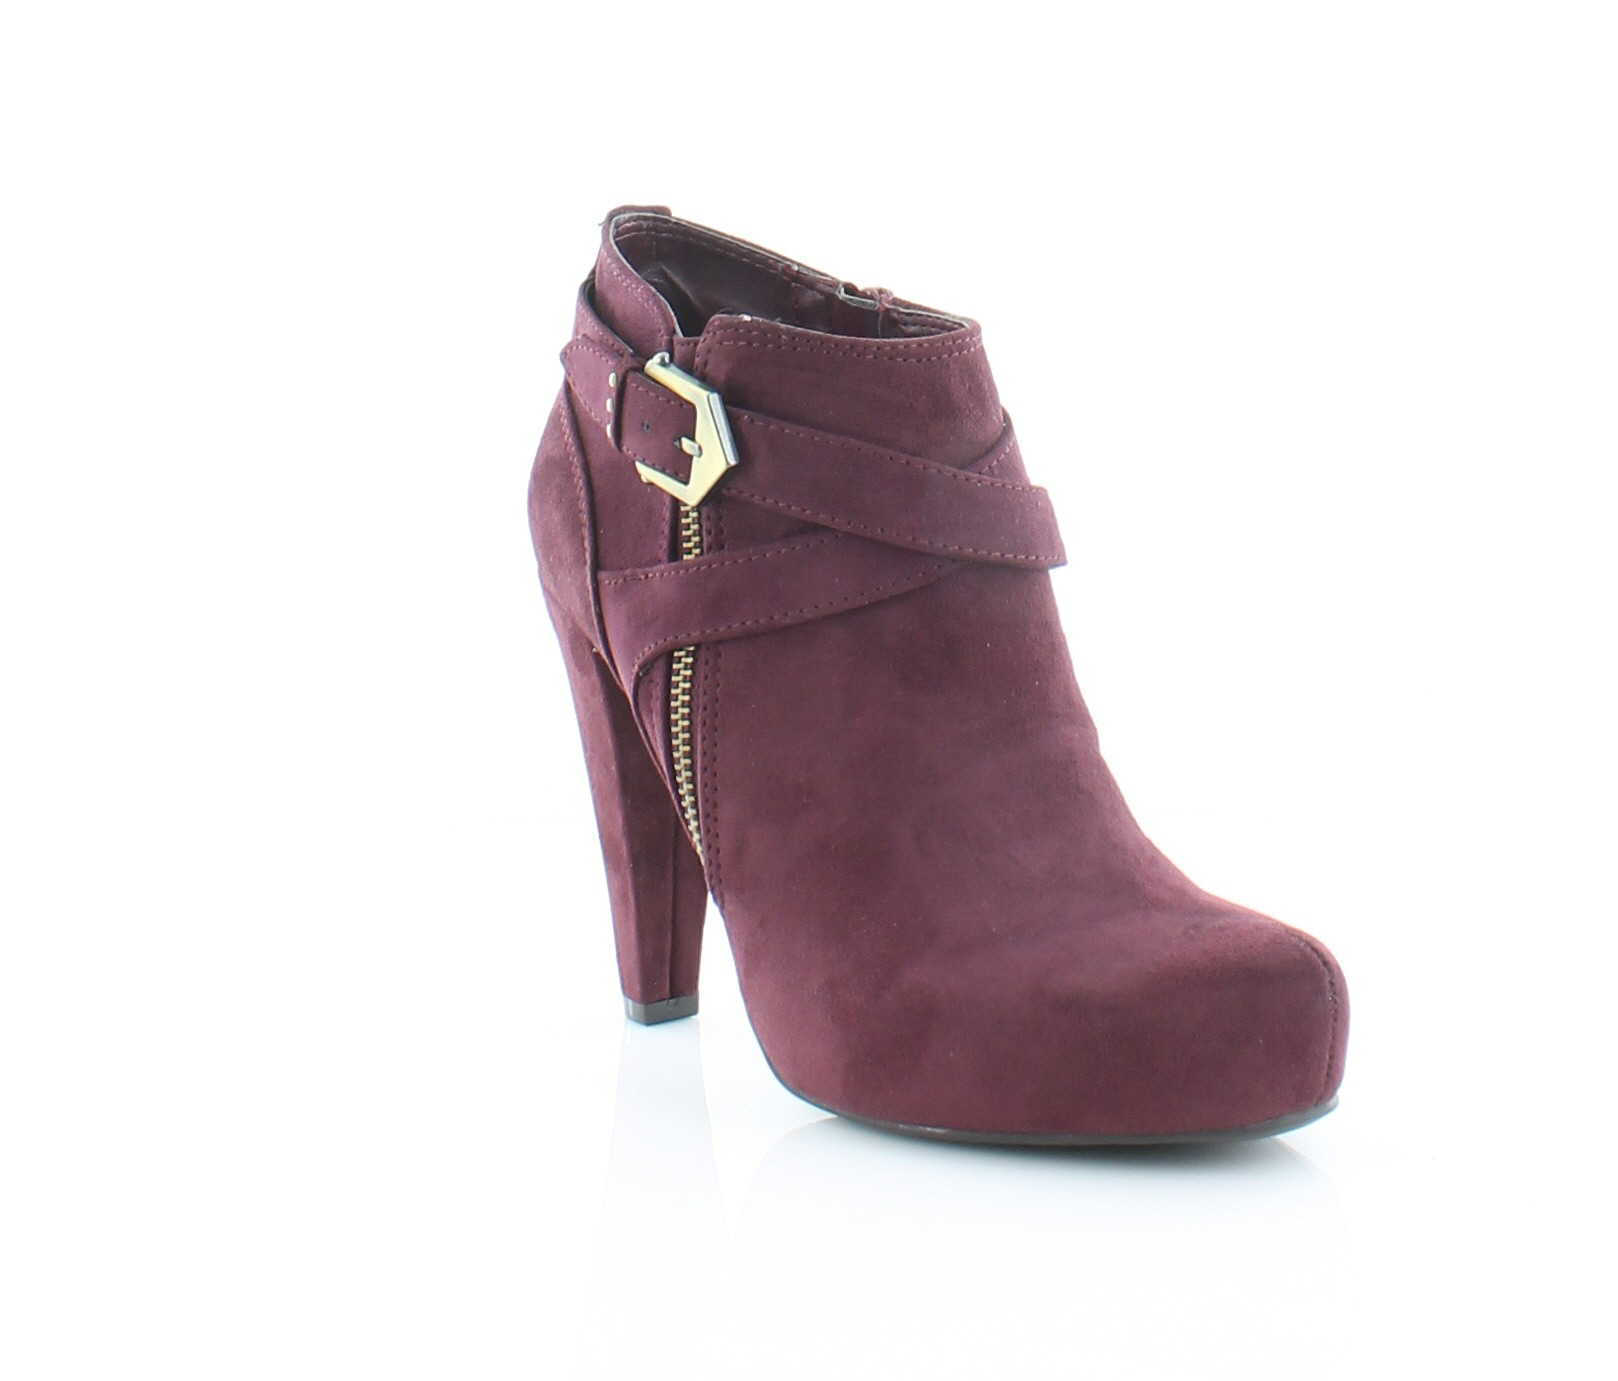 G by Guess Taylin Women's Boots Dark Red Size 9.5 M